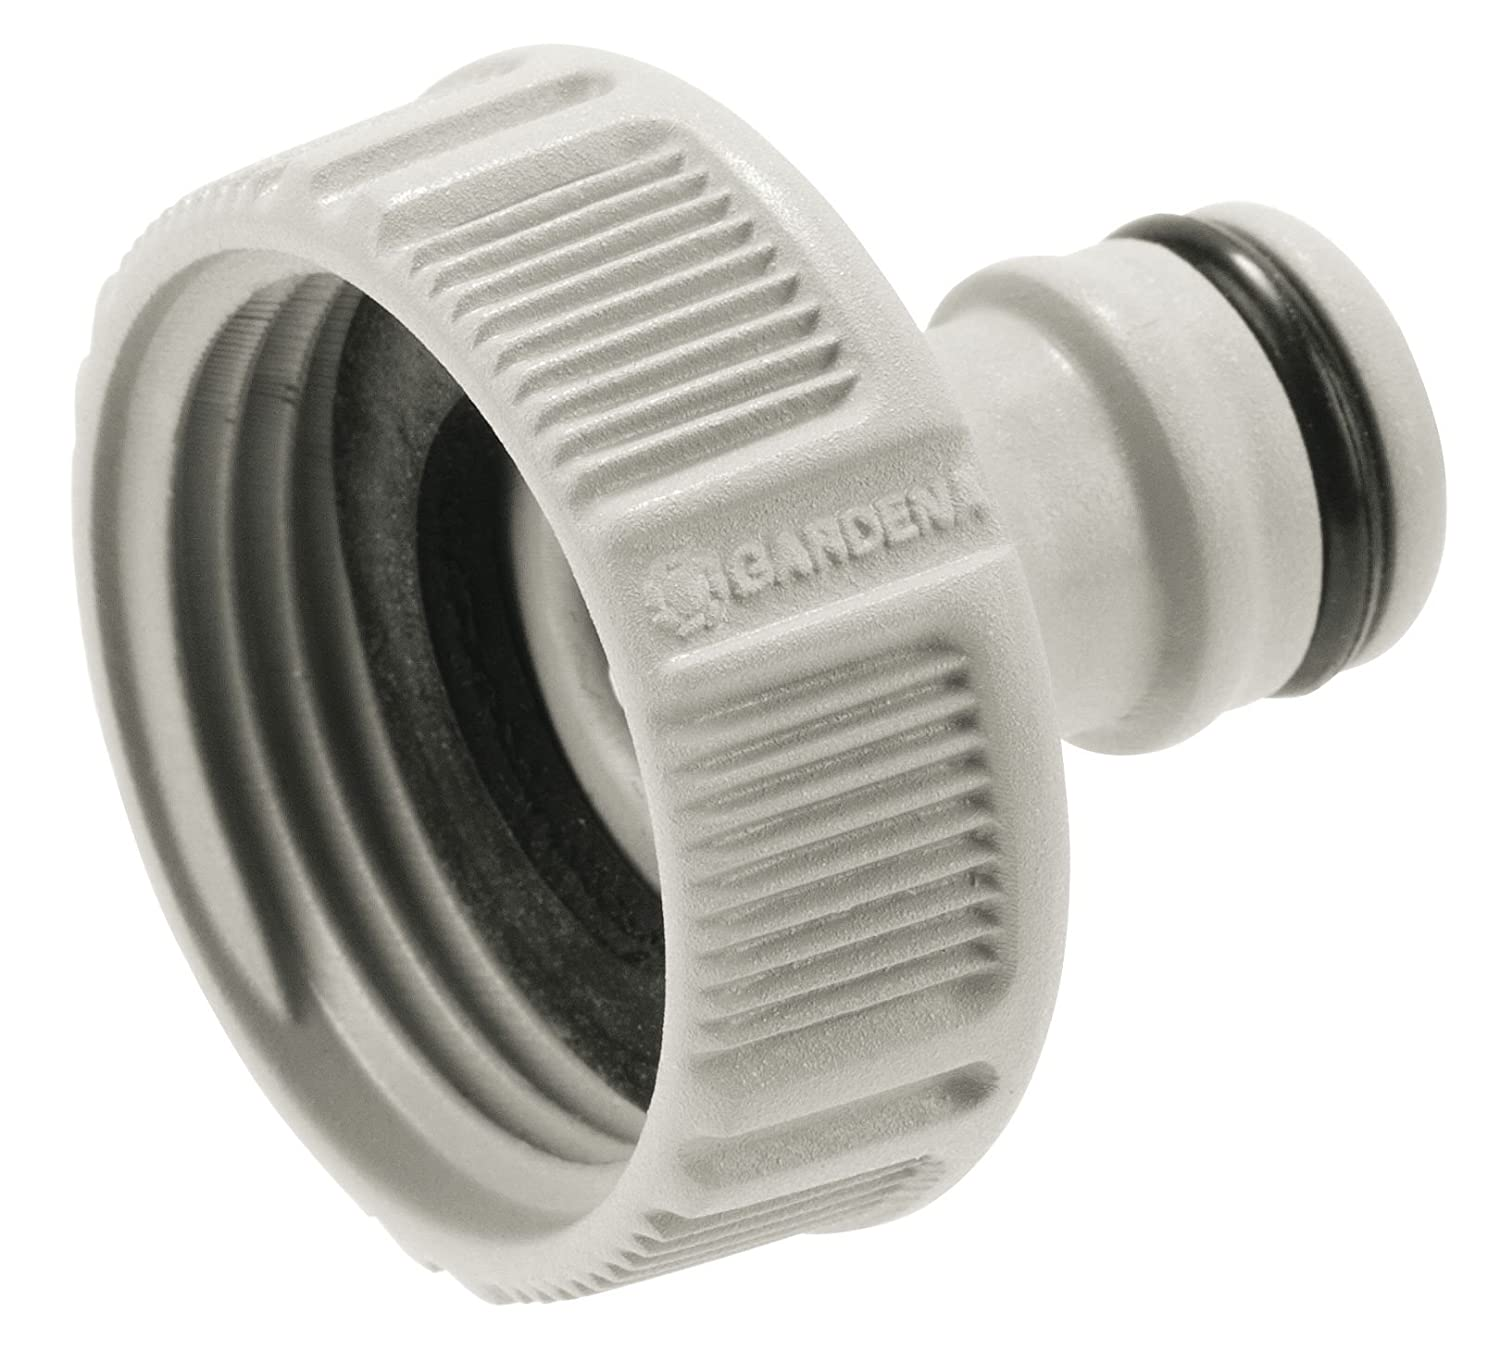 Gardena Tap Connector for Threaded Taps G 1'